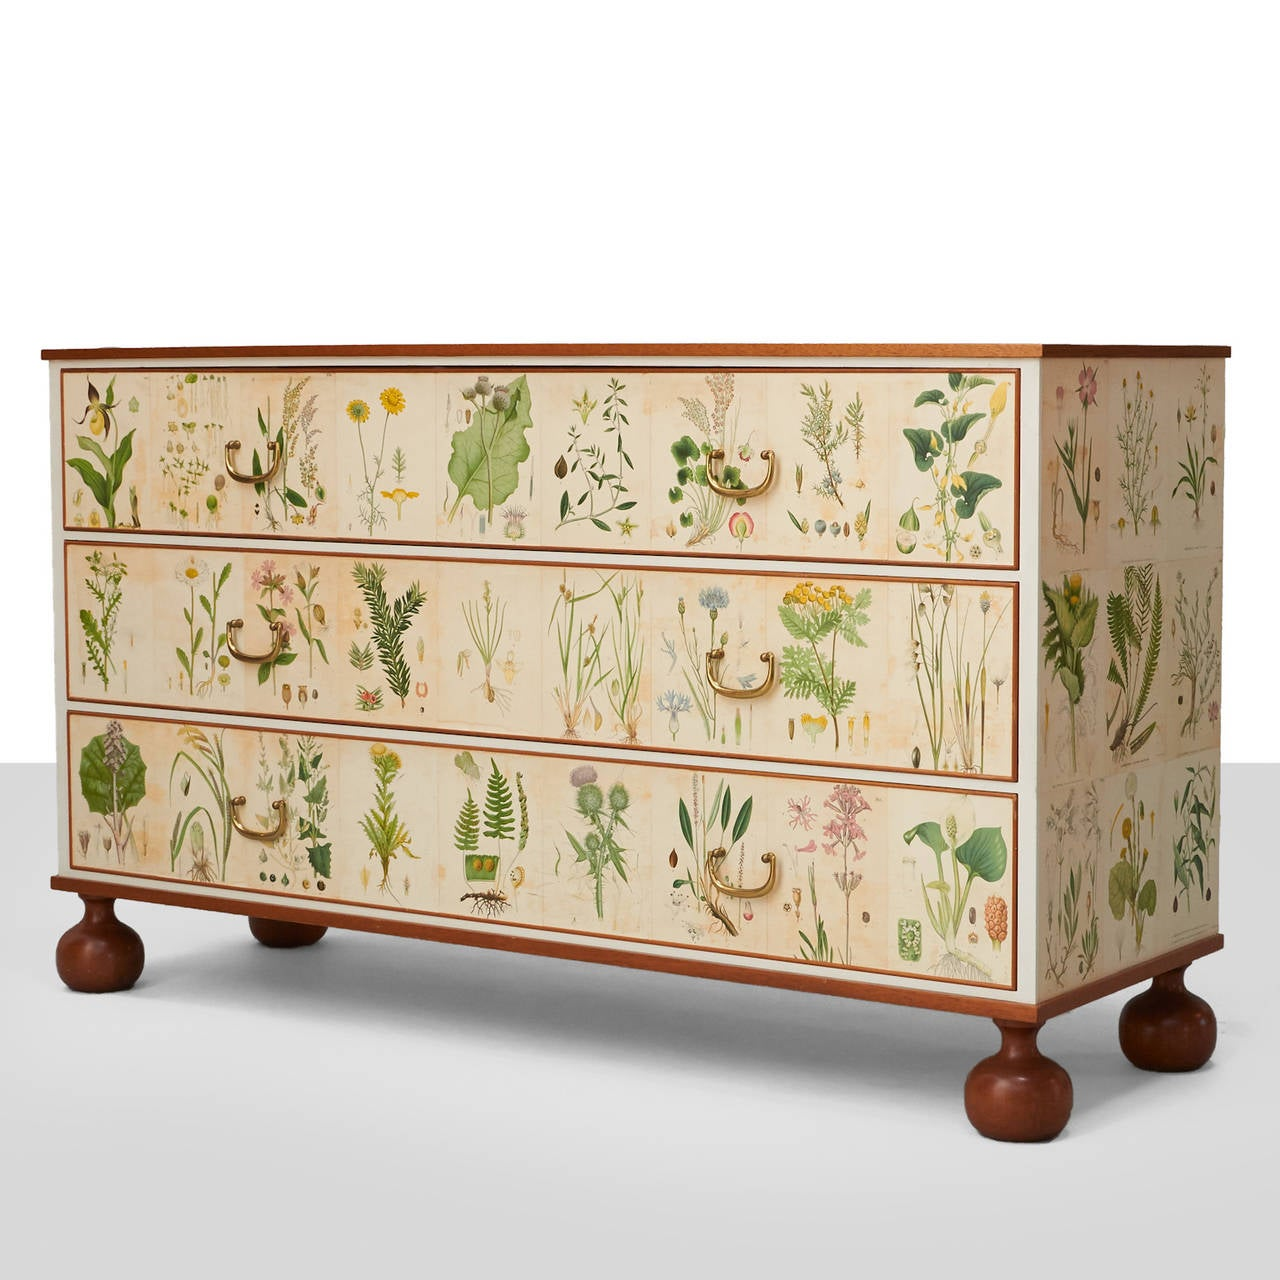 """A rare and important chest from the """"Flora"""" Series. Mahogany frame with illustrations from the book """"Nordens Flora"""" by C.A.M. Lindman. Brass handles. Model #1050 Literature : Josef Frank/Inspiration 1994. P. 32"""